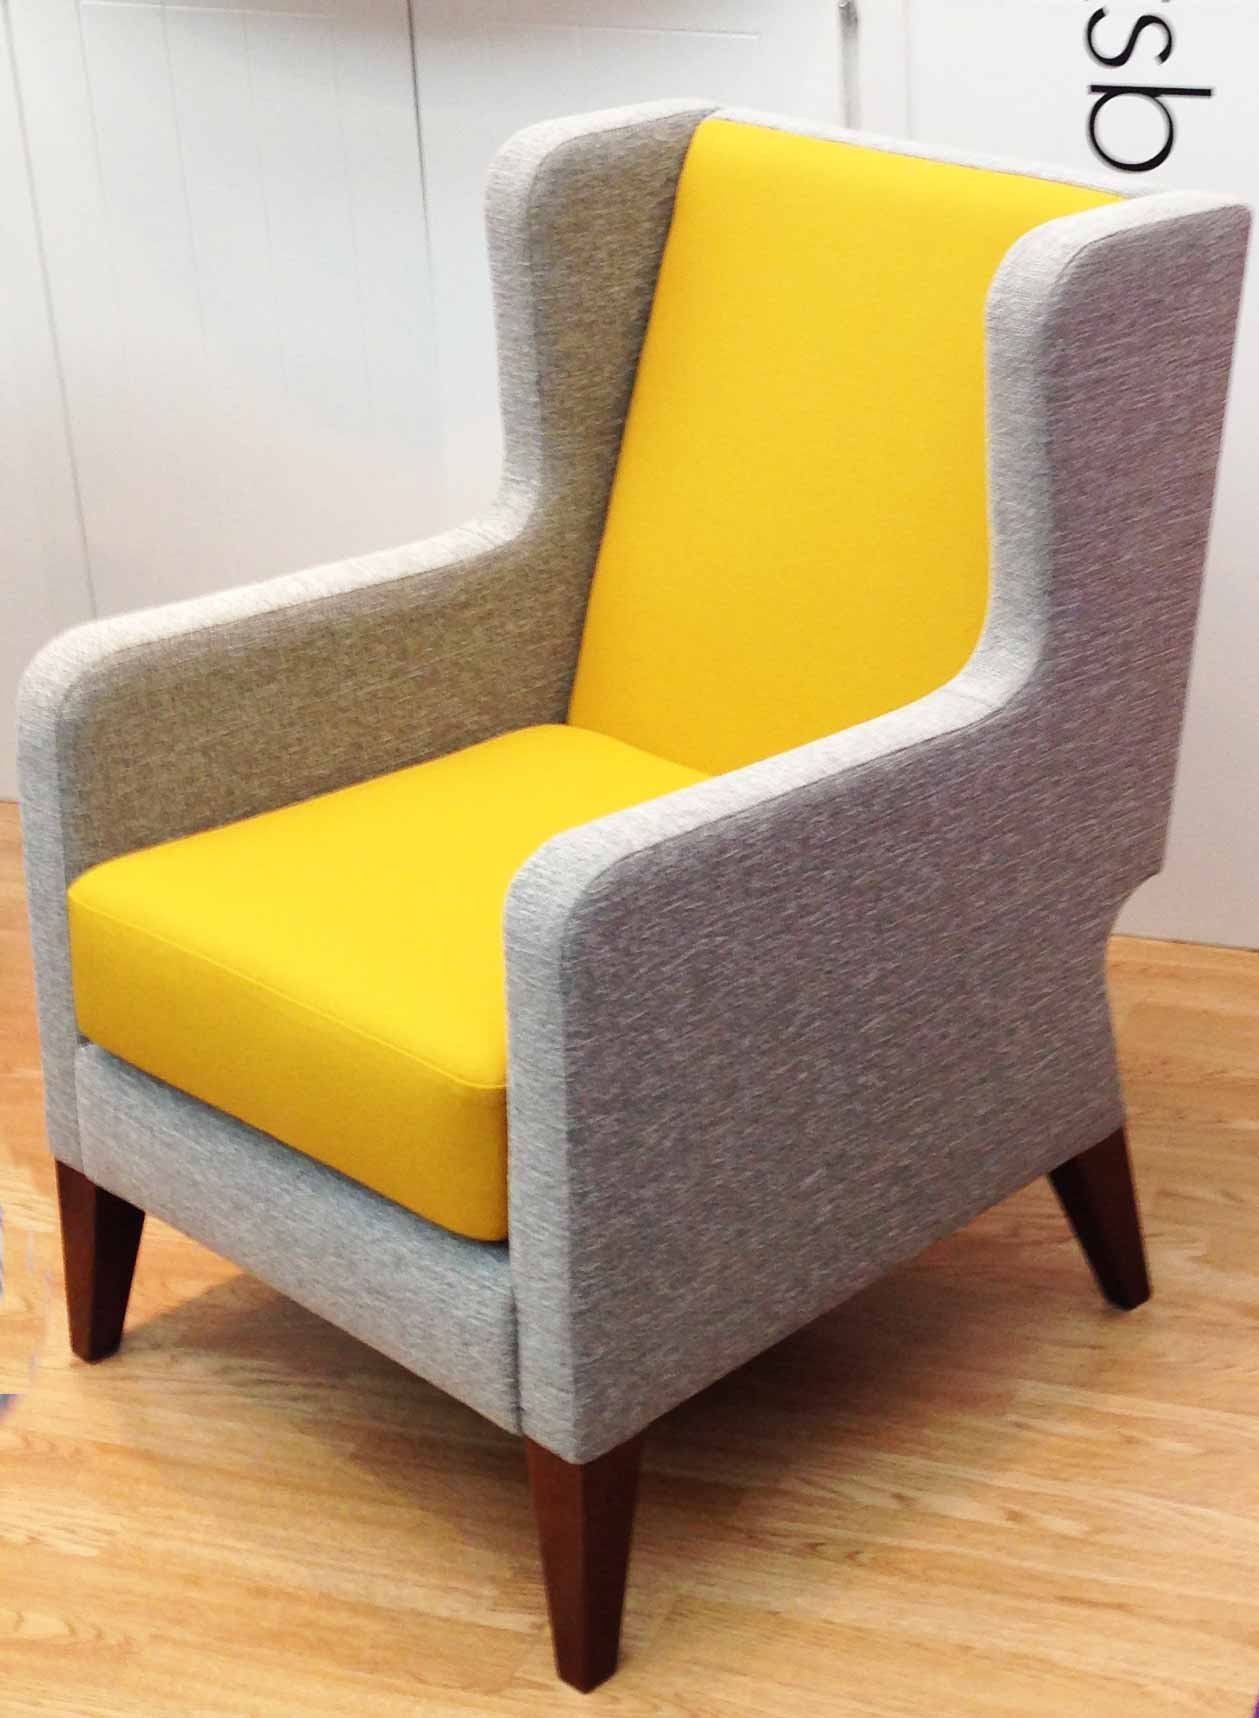 Yellow and grey chair winda 7 furniture for Yellow and gray design